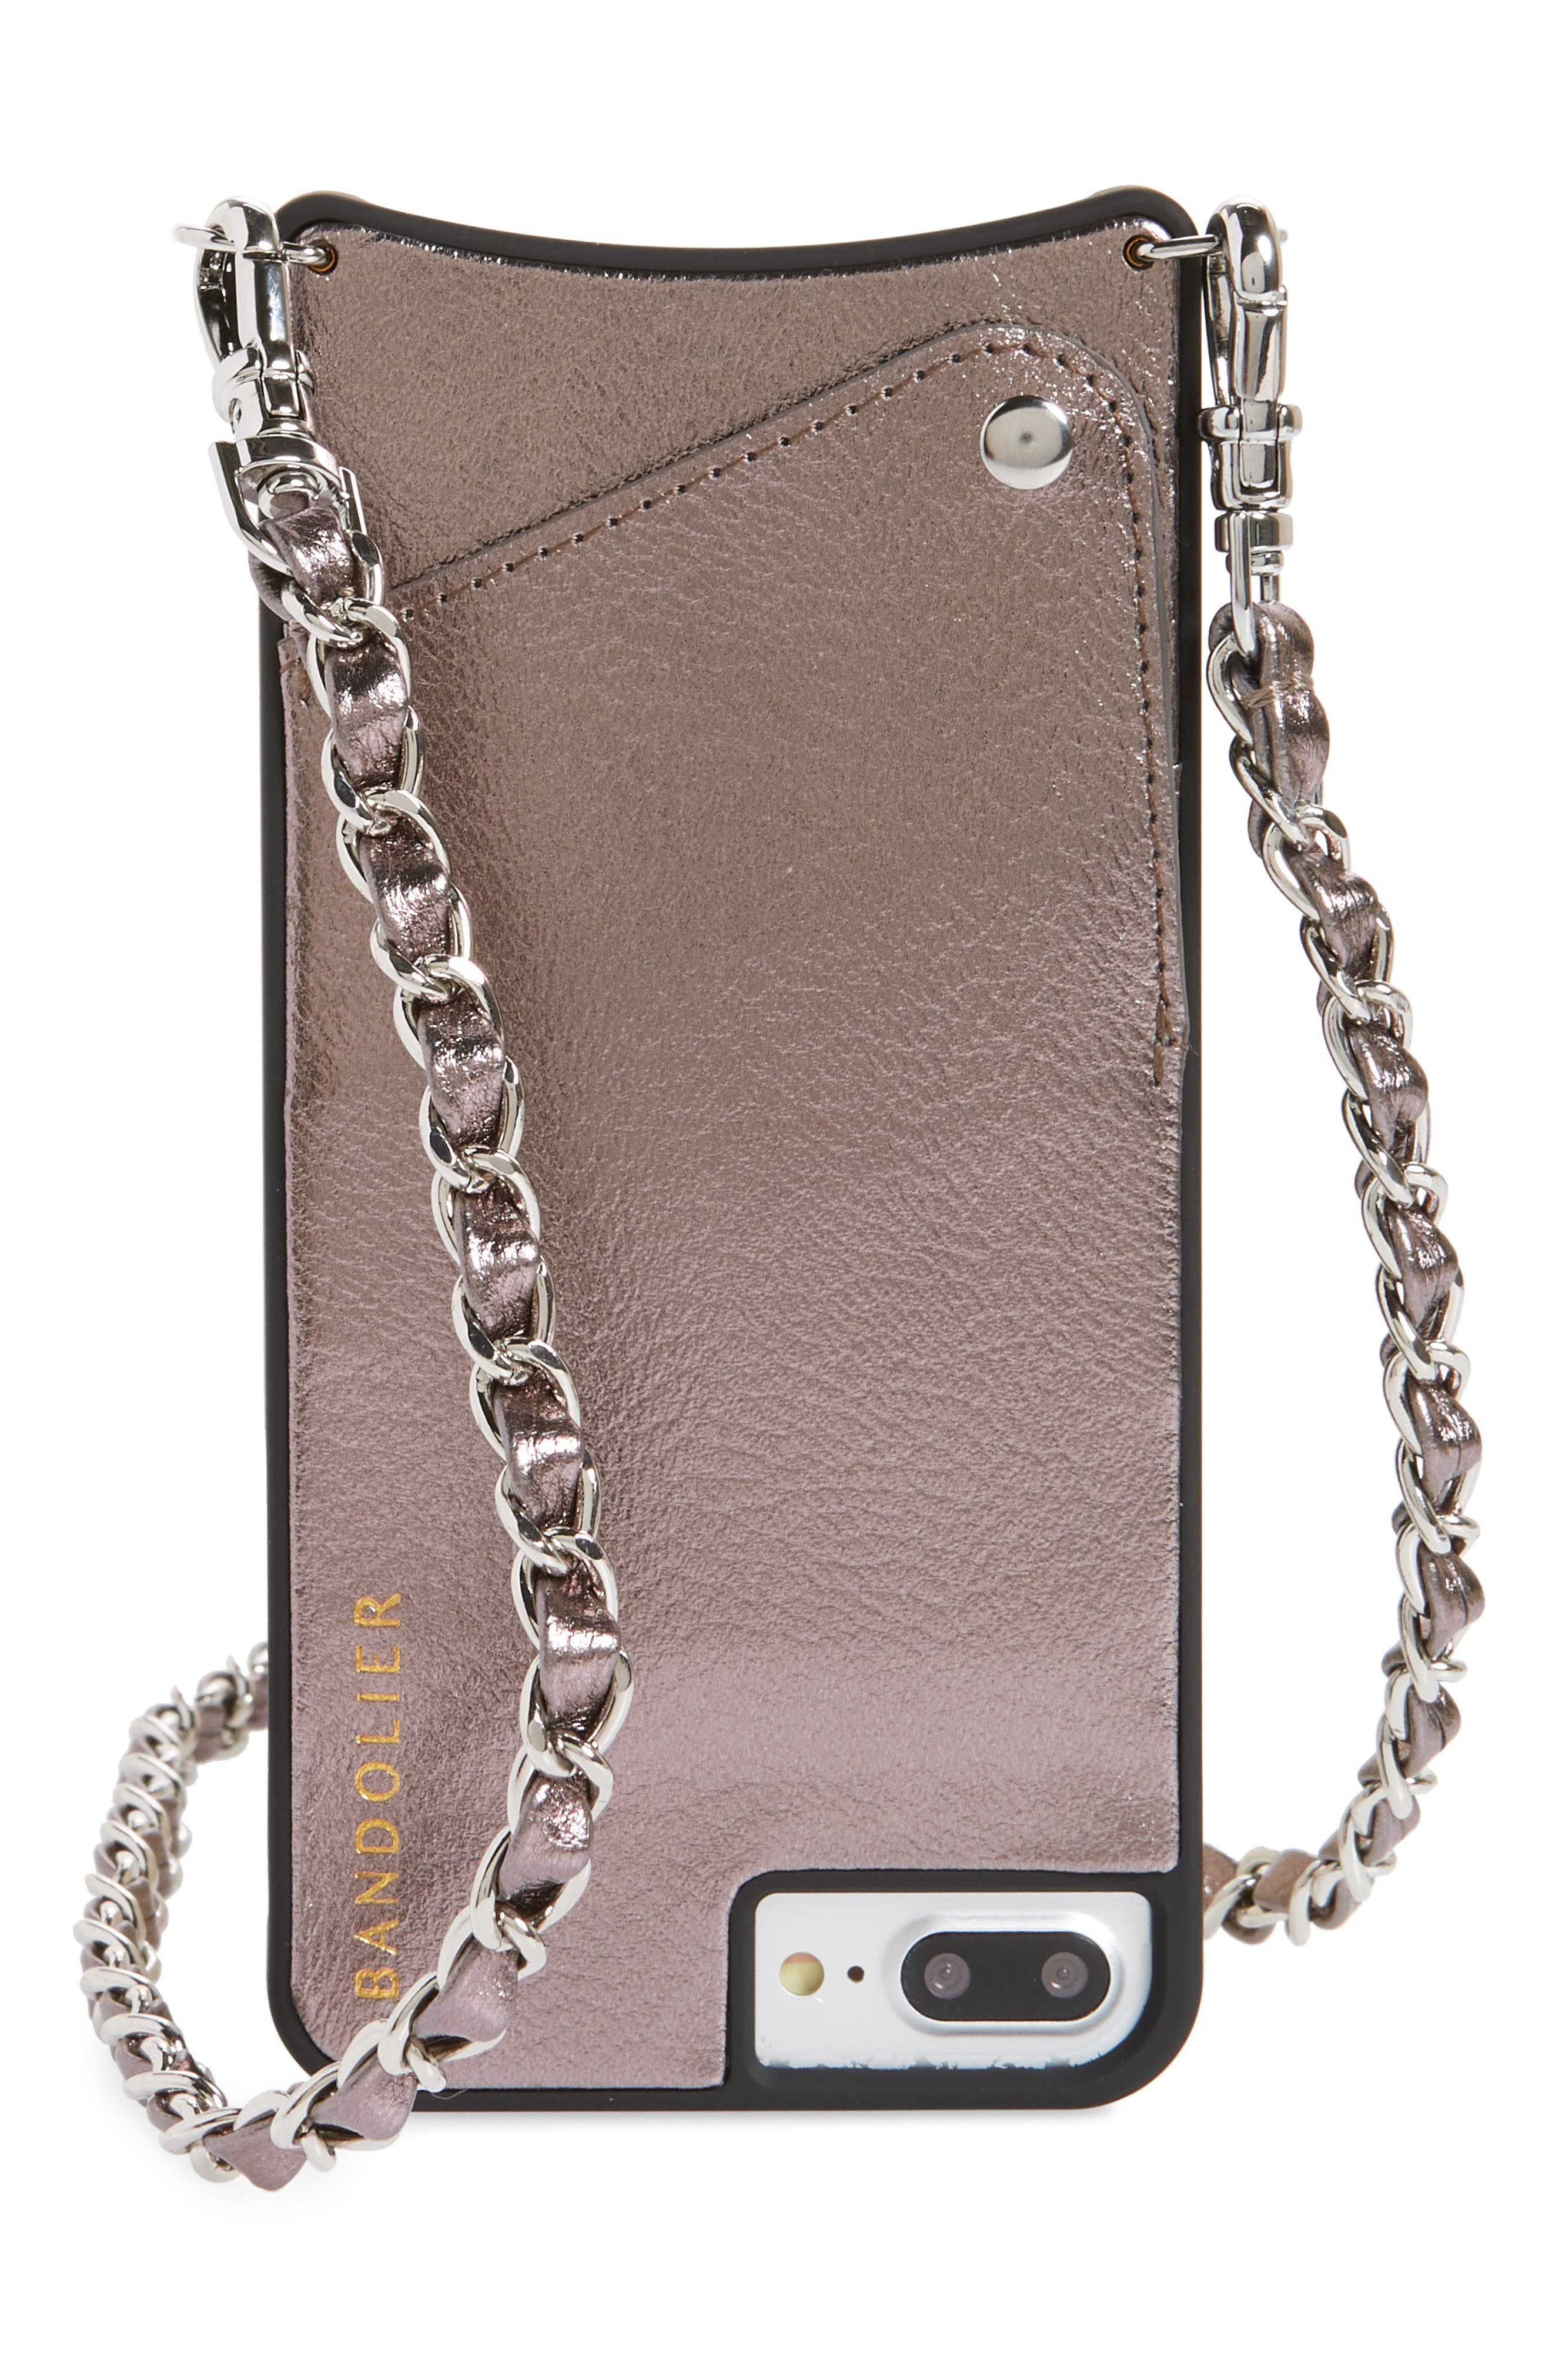 Lucy Faux Leather iPhone 7/8 & 7/8 Plus Crossbody Case,                             Main thumbnail 1, color,                             METALLIC ASH/ SILVER